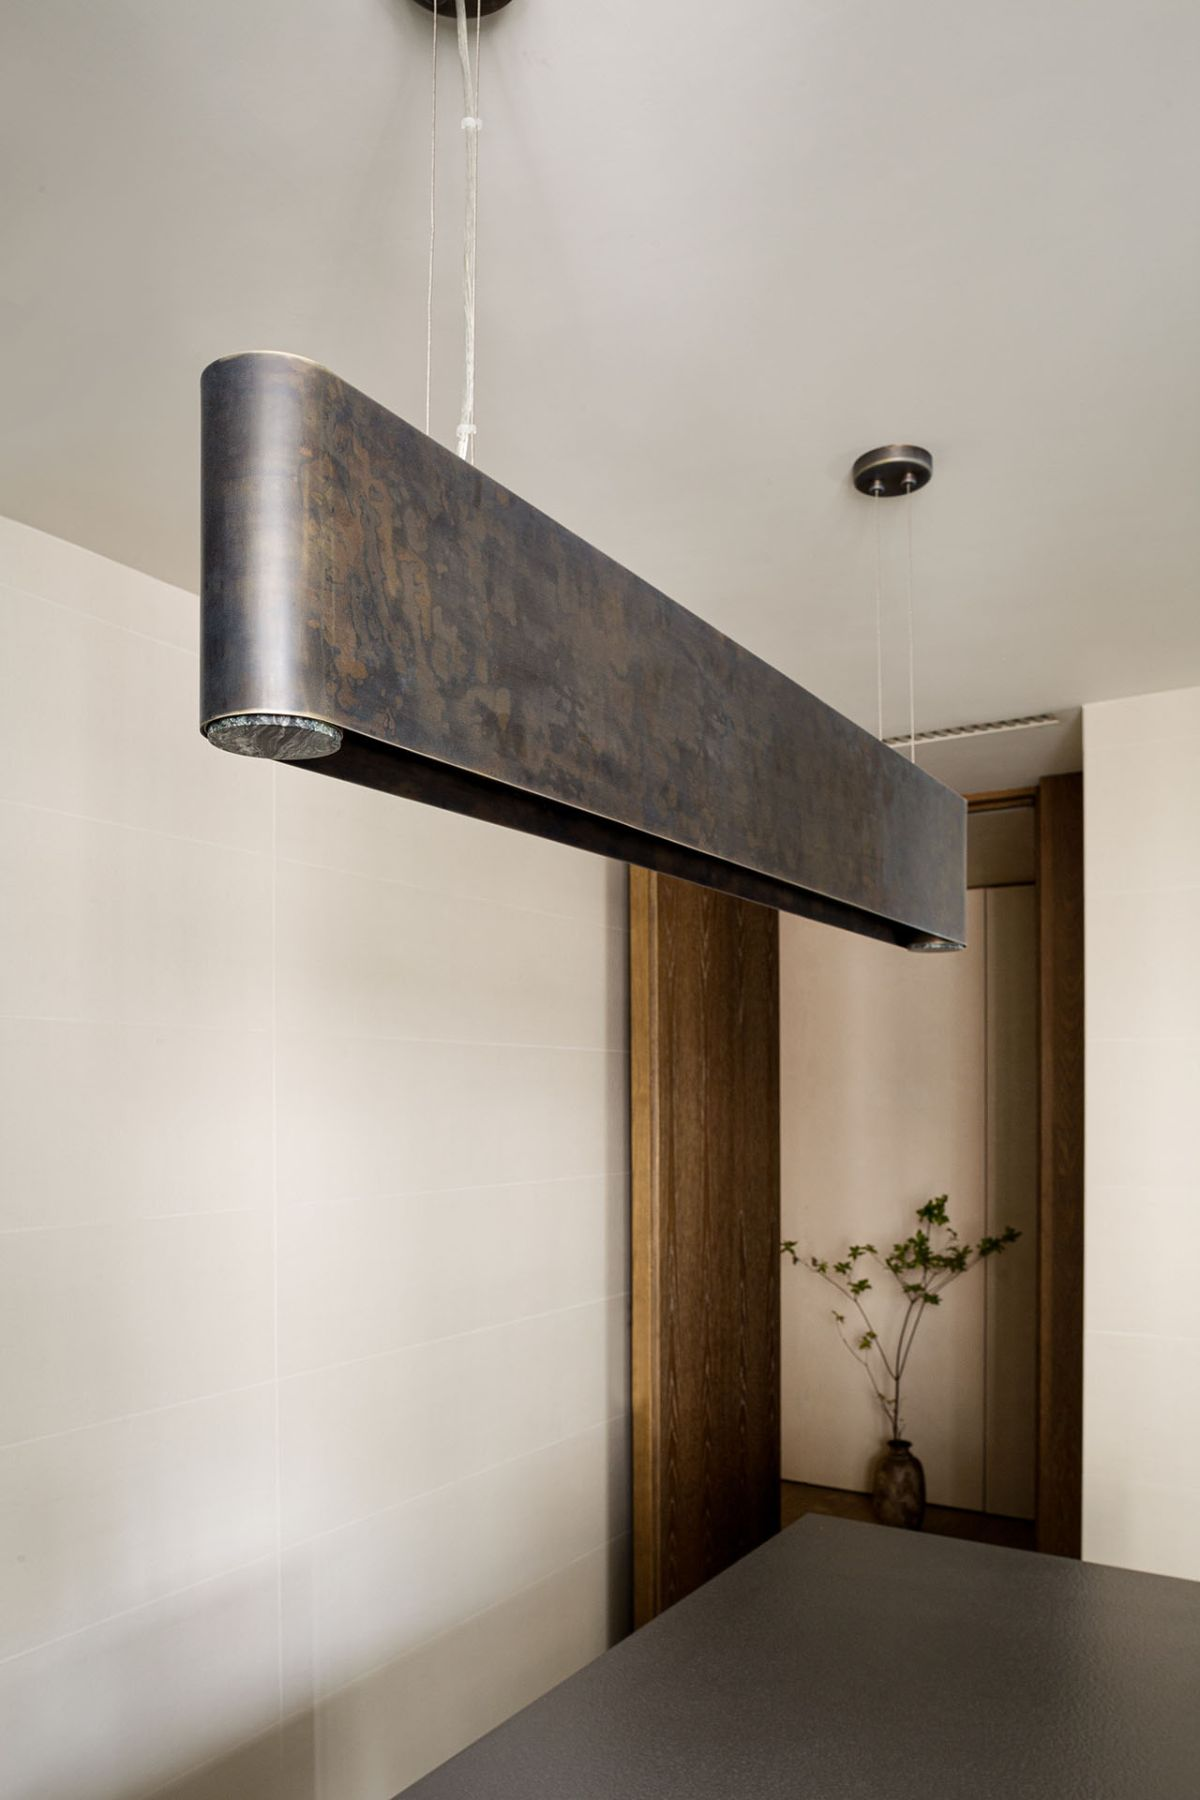 Oxidized metal accents and brass details have been seamlessly integrated into every room's decor